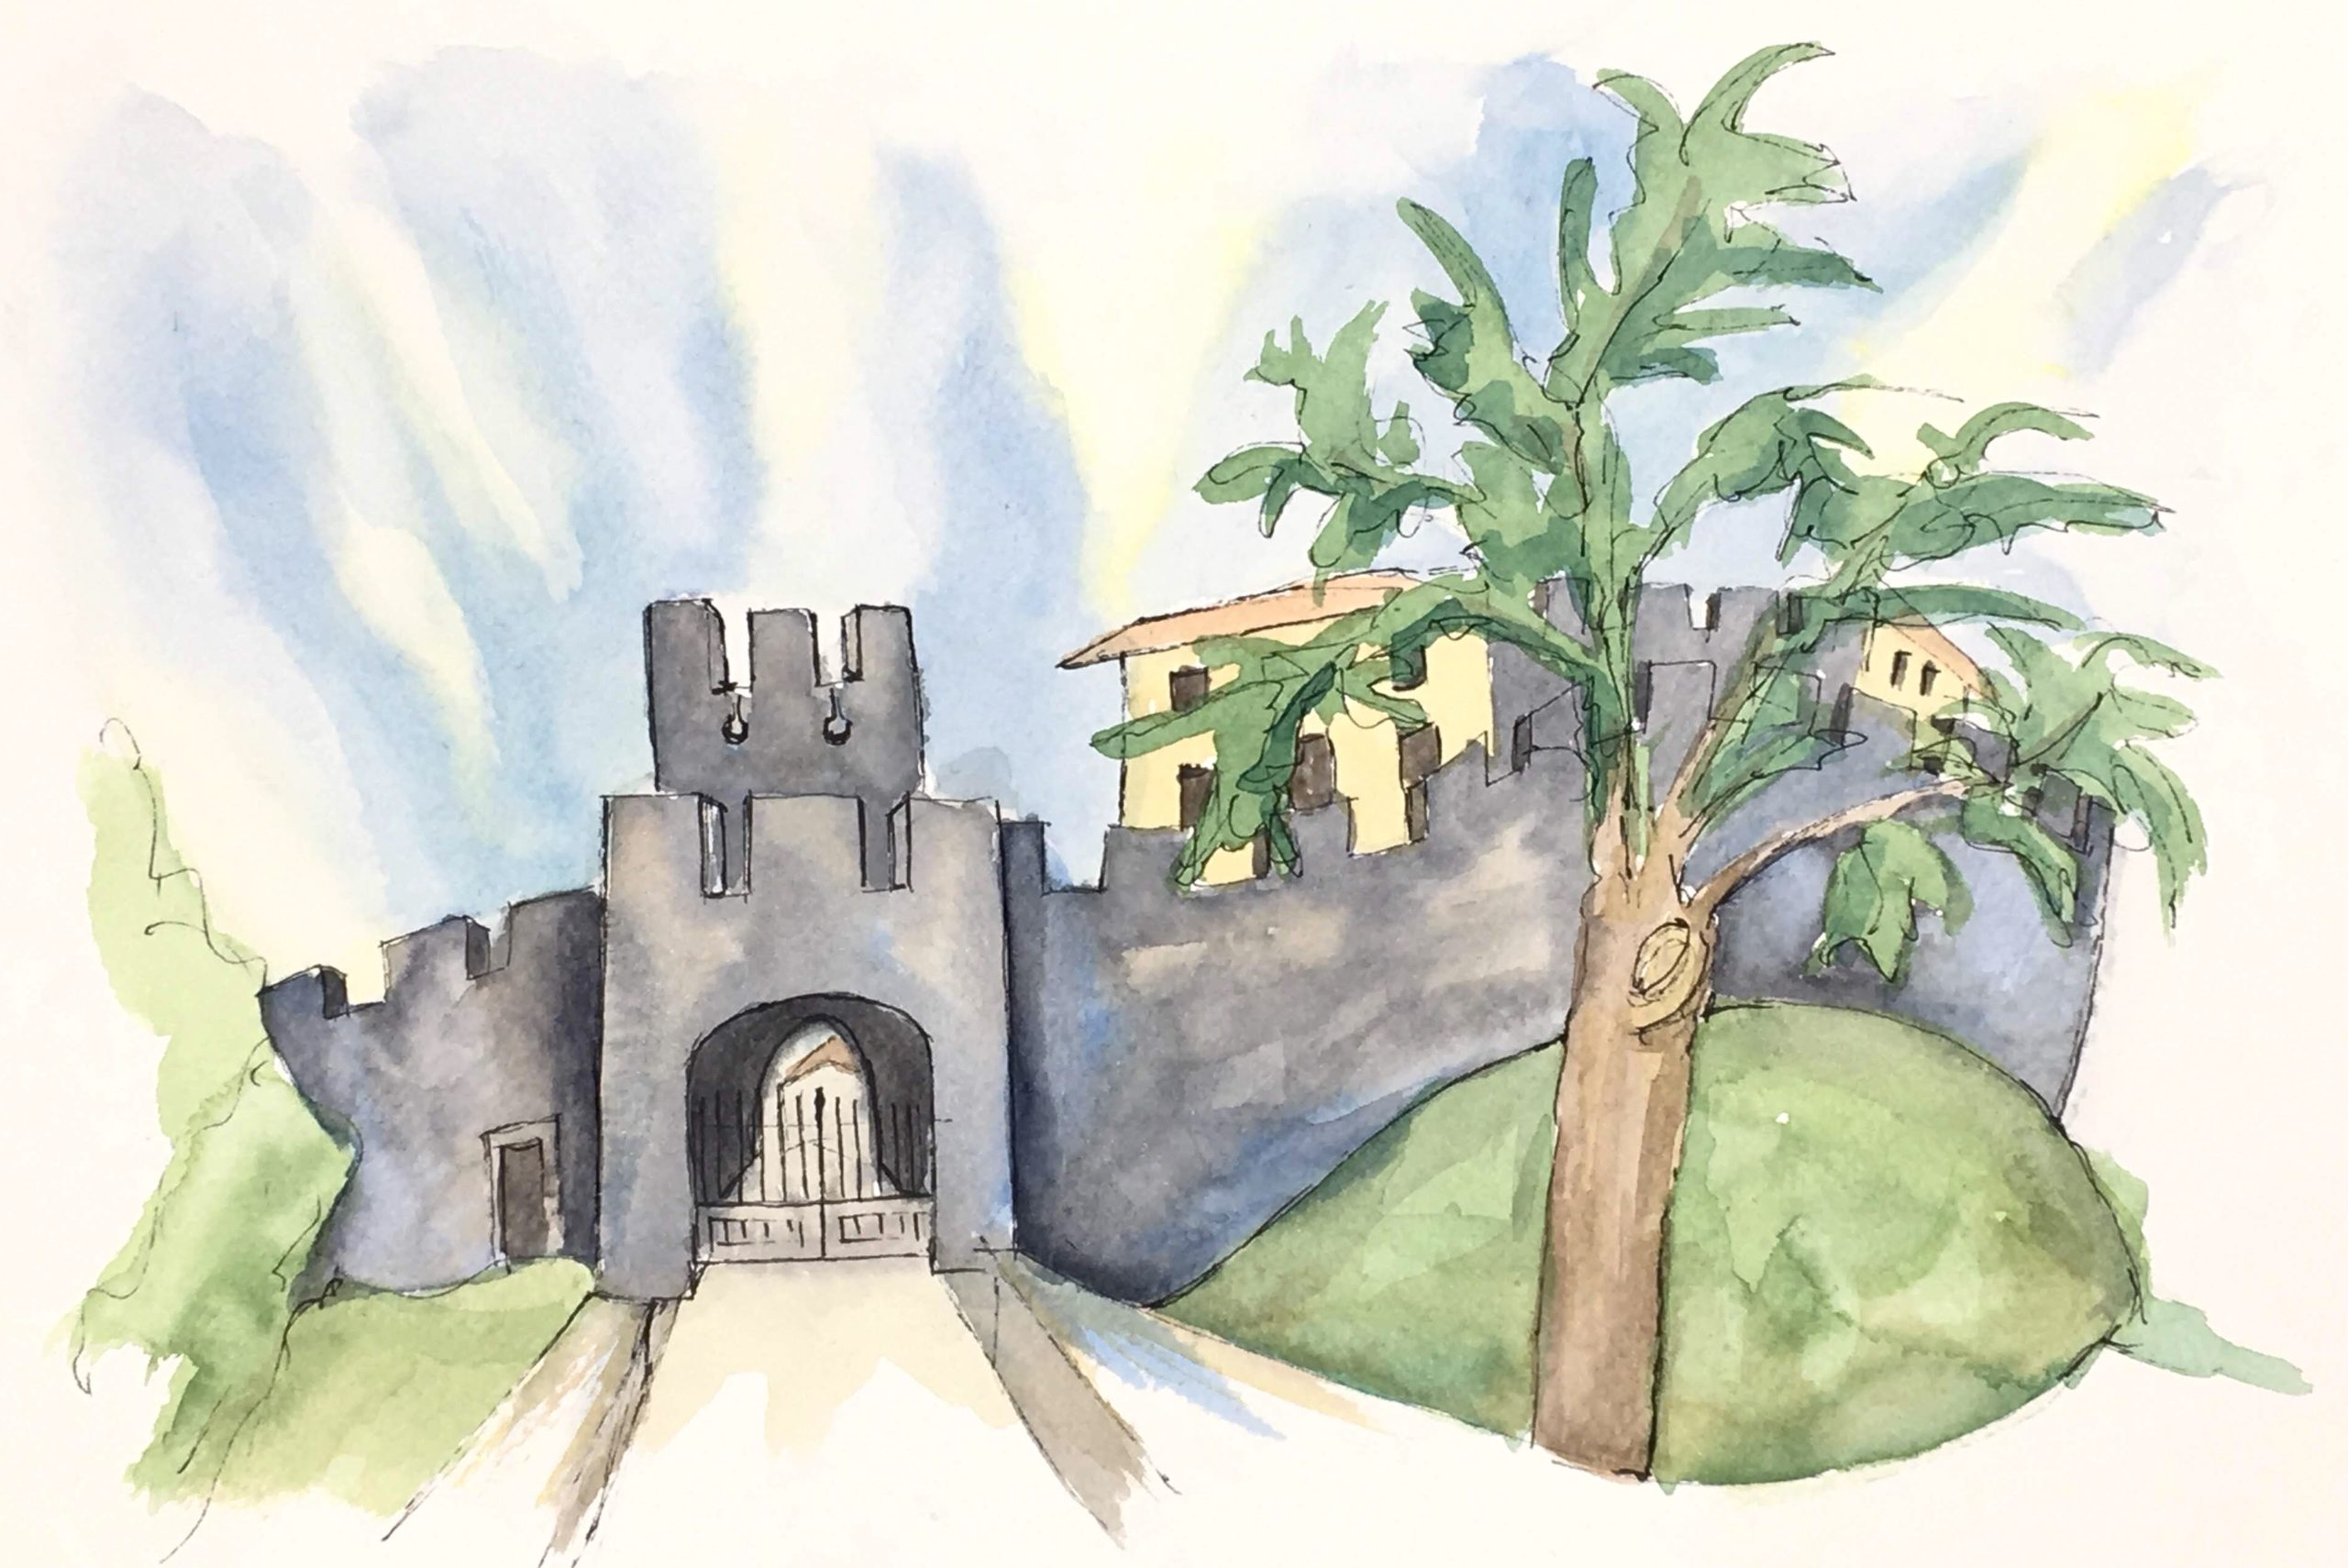 Painting of The castle of Arcano di Sopra